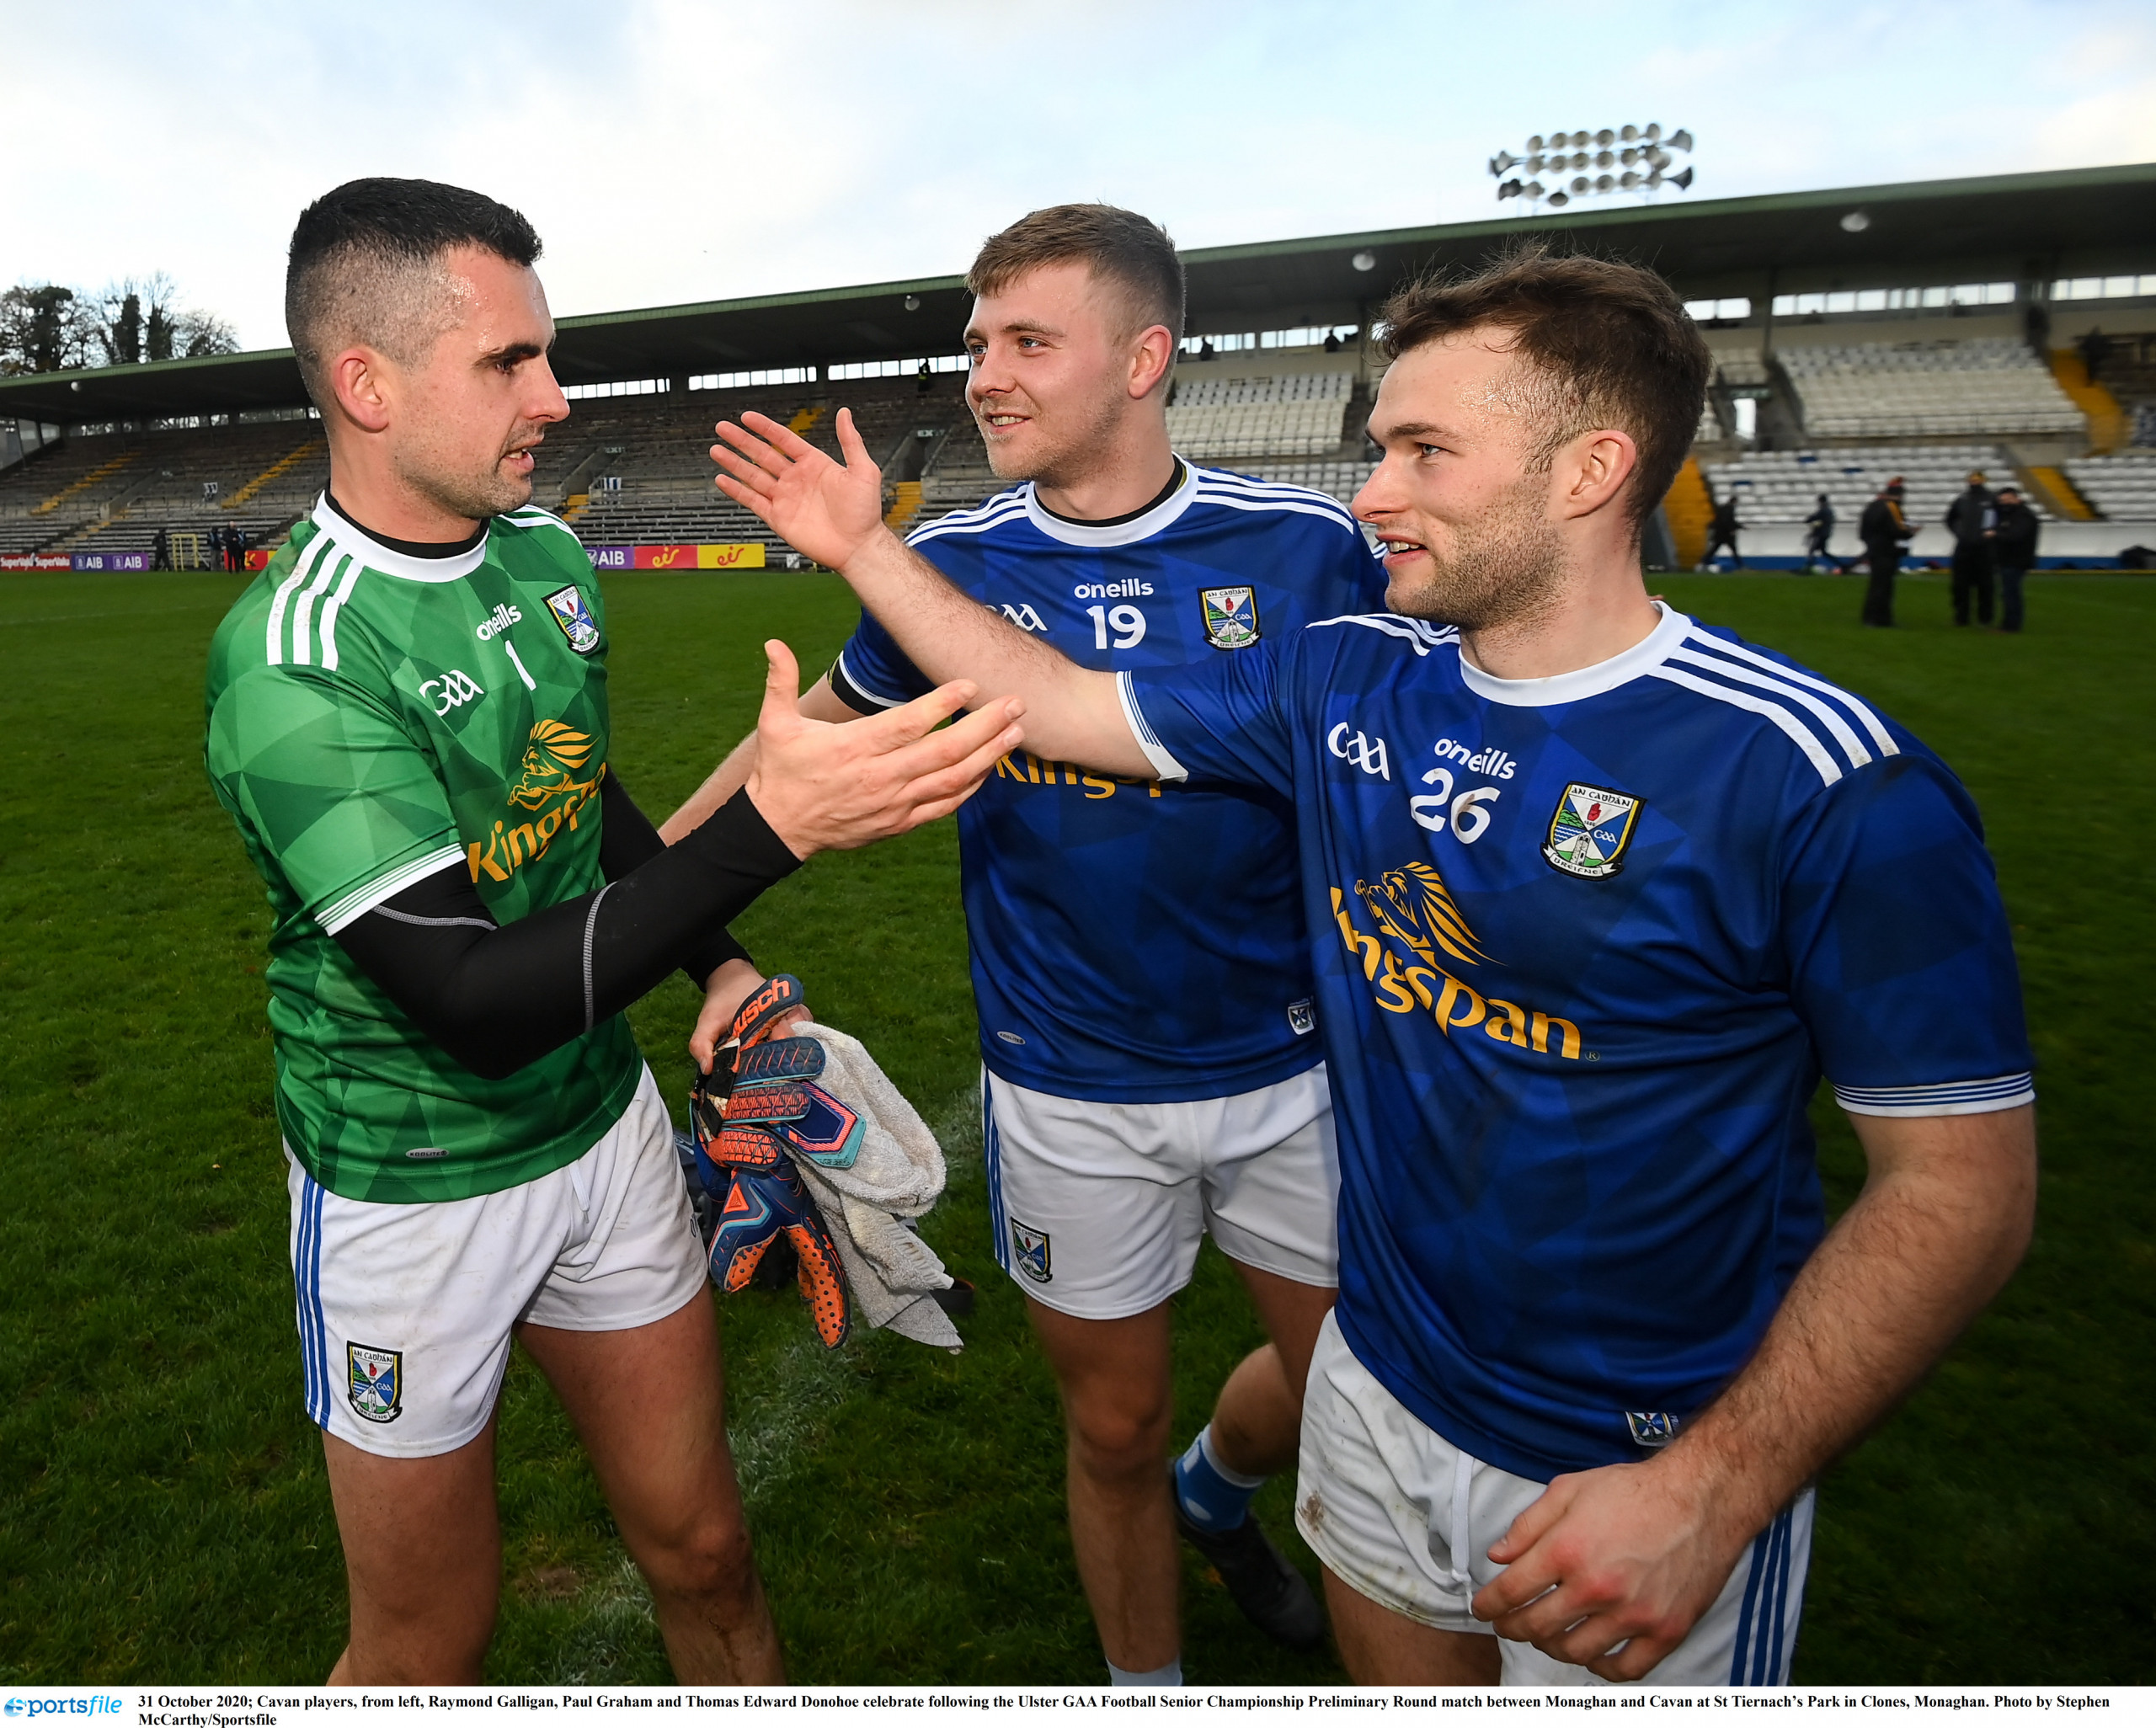 FEATURE: Captain Galligan keeping Cavan on course